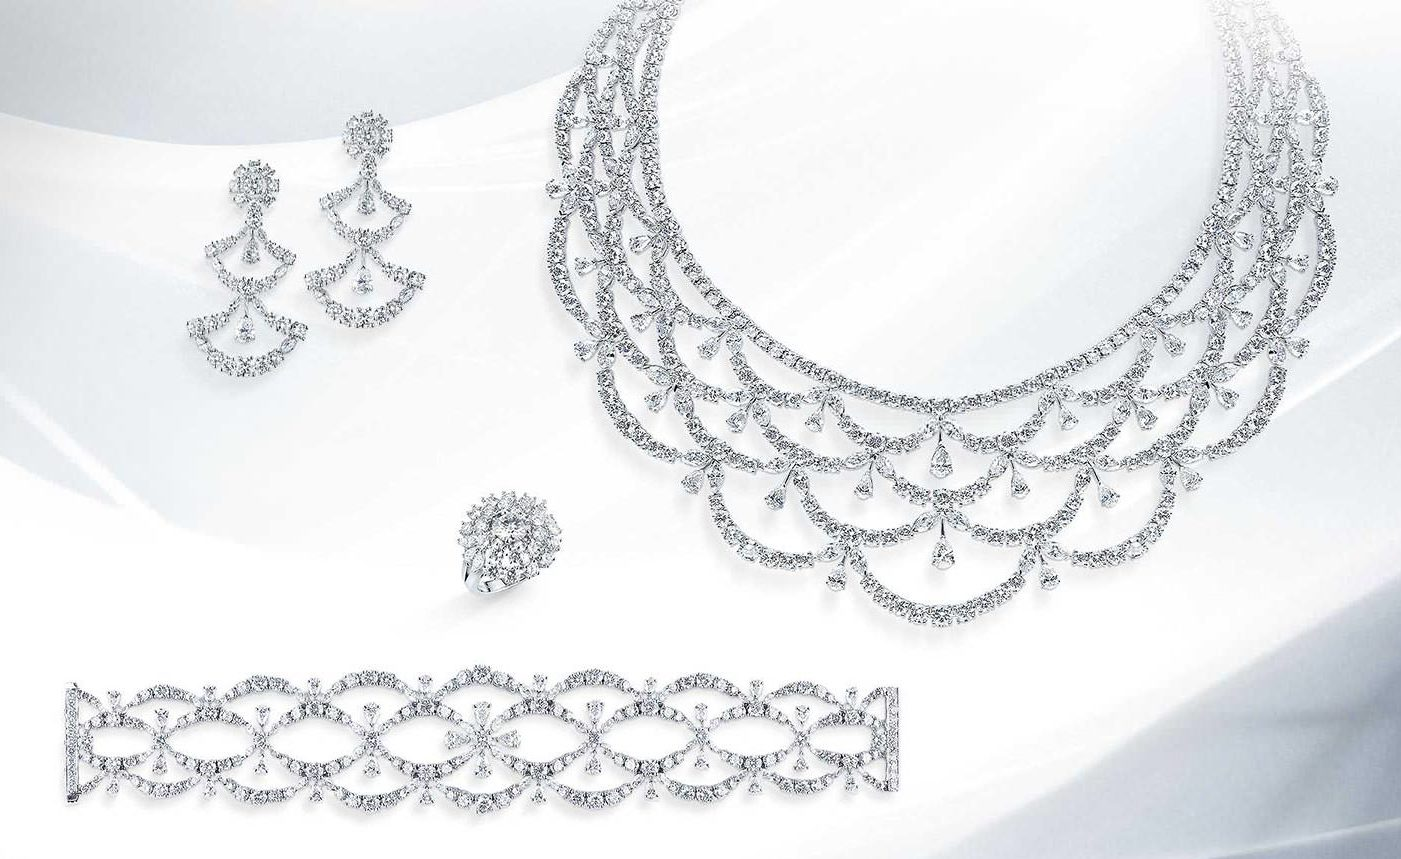 f1f988fb5f4c3 A Sparkling Gift Guide for Eid Al-Fitr by Mouawad